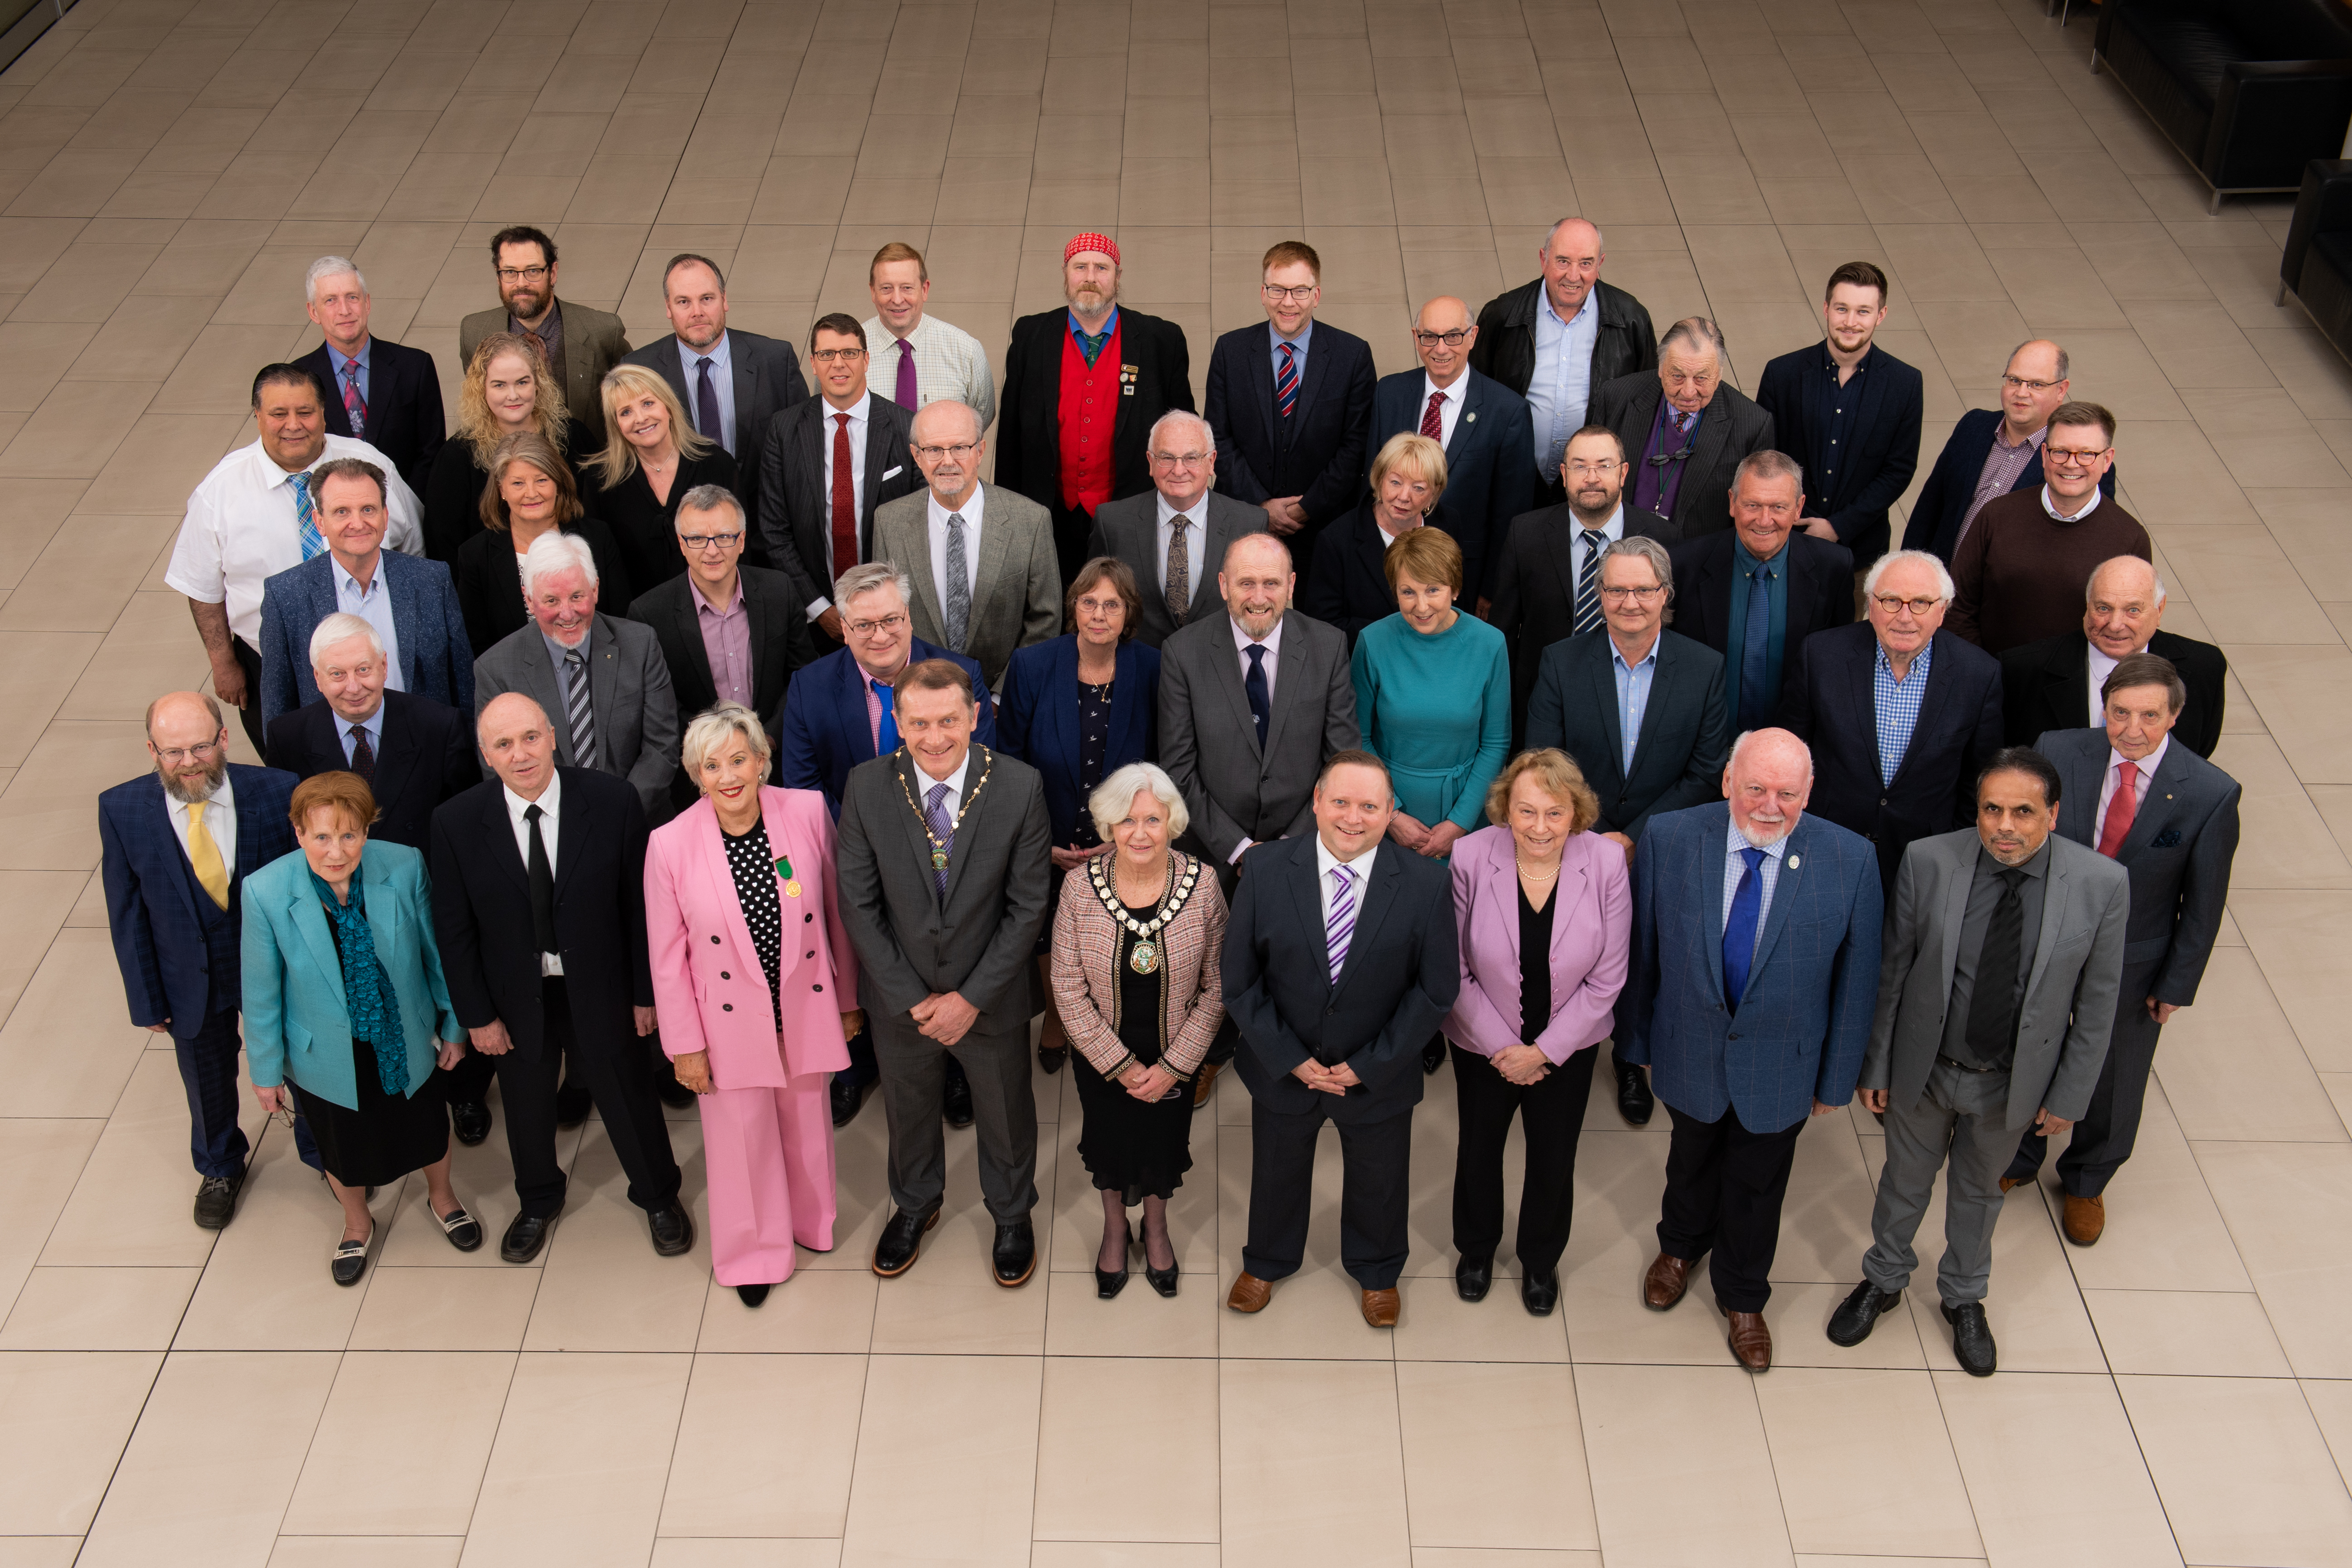 AVDC councillors gather before their meeting in February 2020